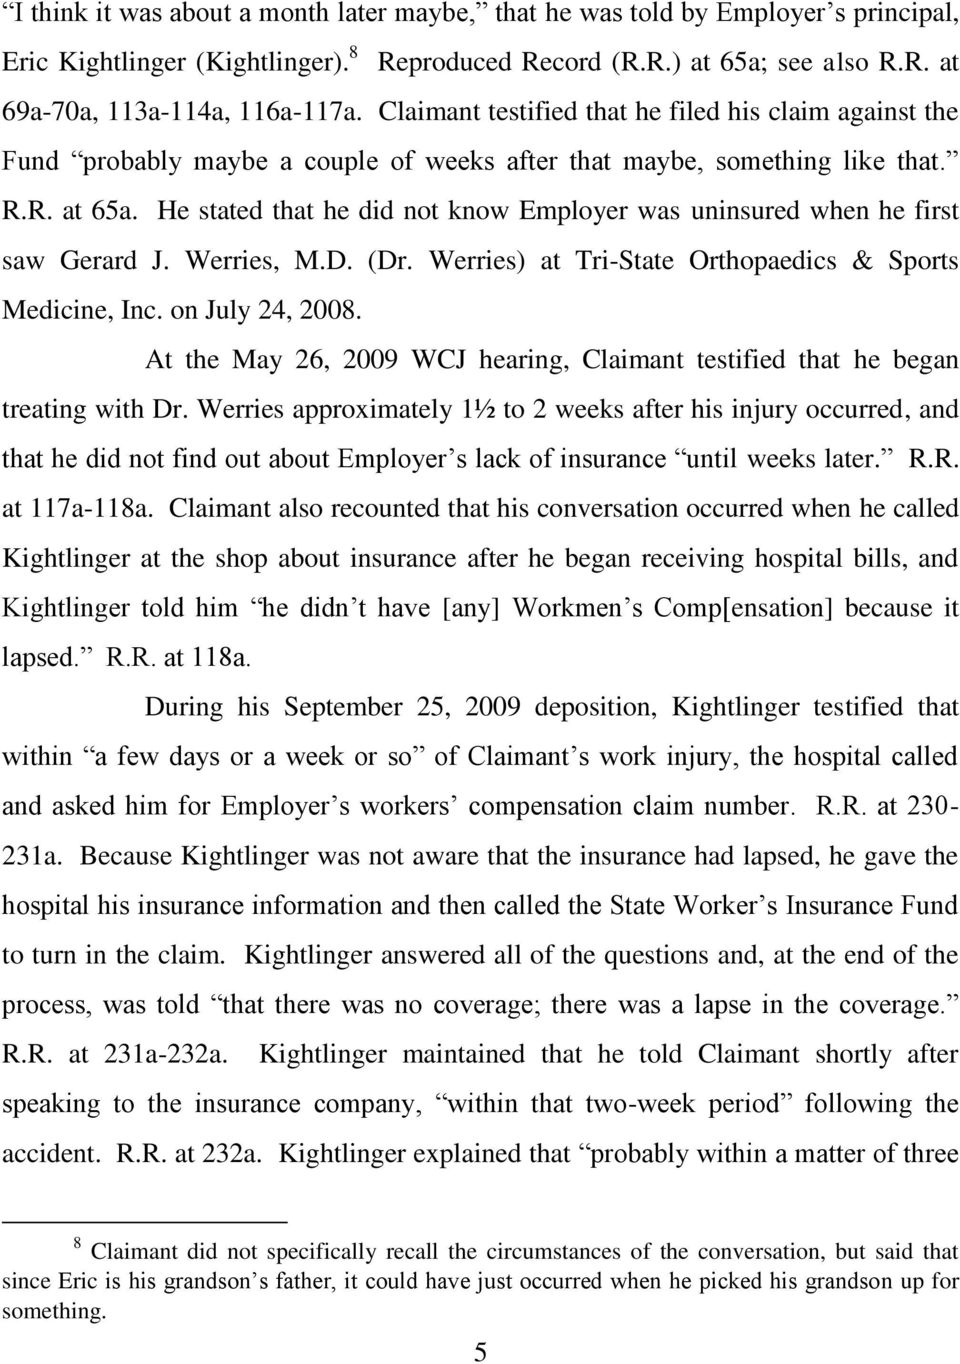 He stated that he did not know Employer was uninsured when he first saw Gerard J. Werries, M.D. (Dr. Werries) at Tri-State Orthopaedics & Sports Medicine, Inc. on July 24, 2008.